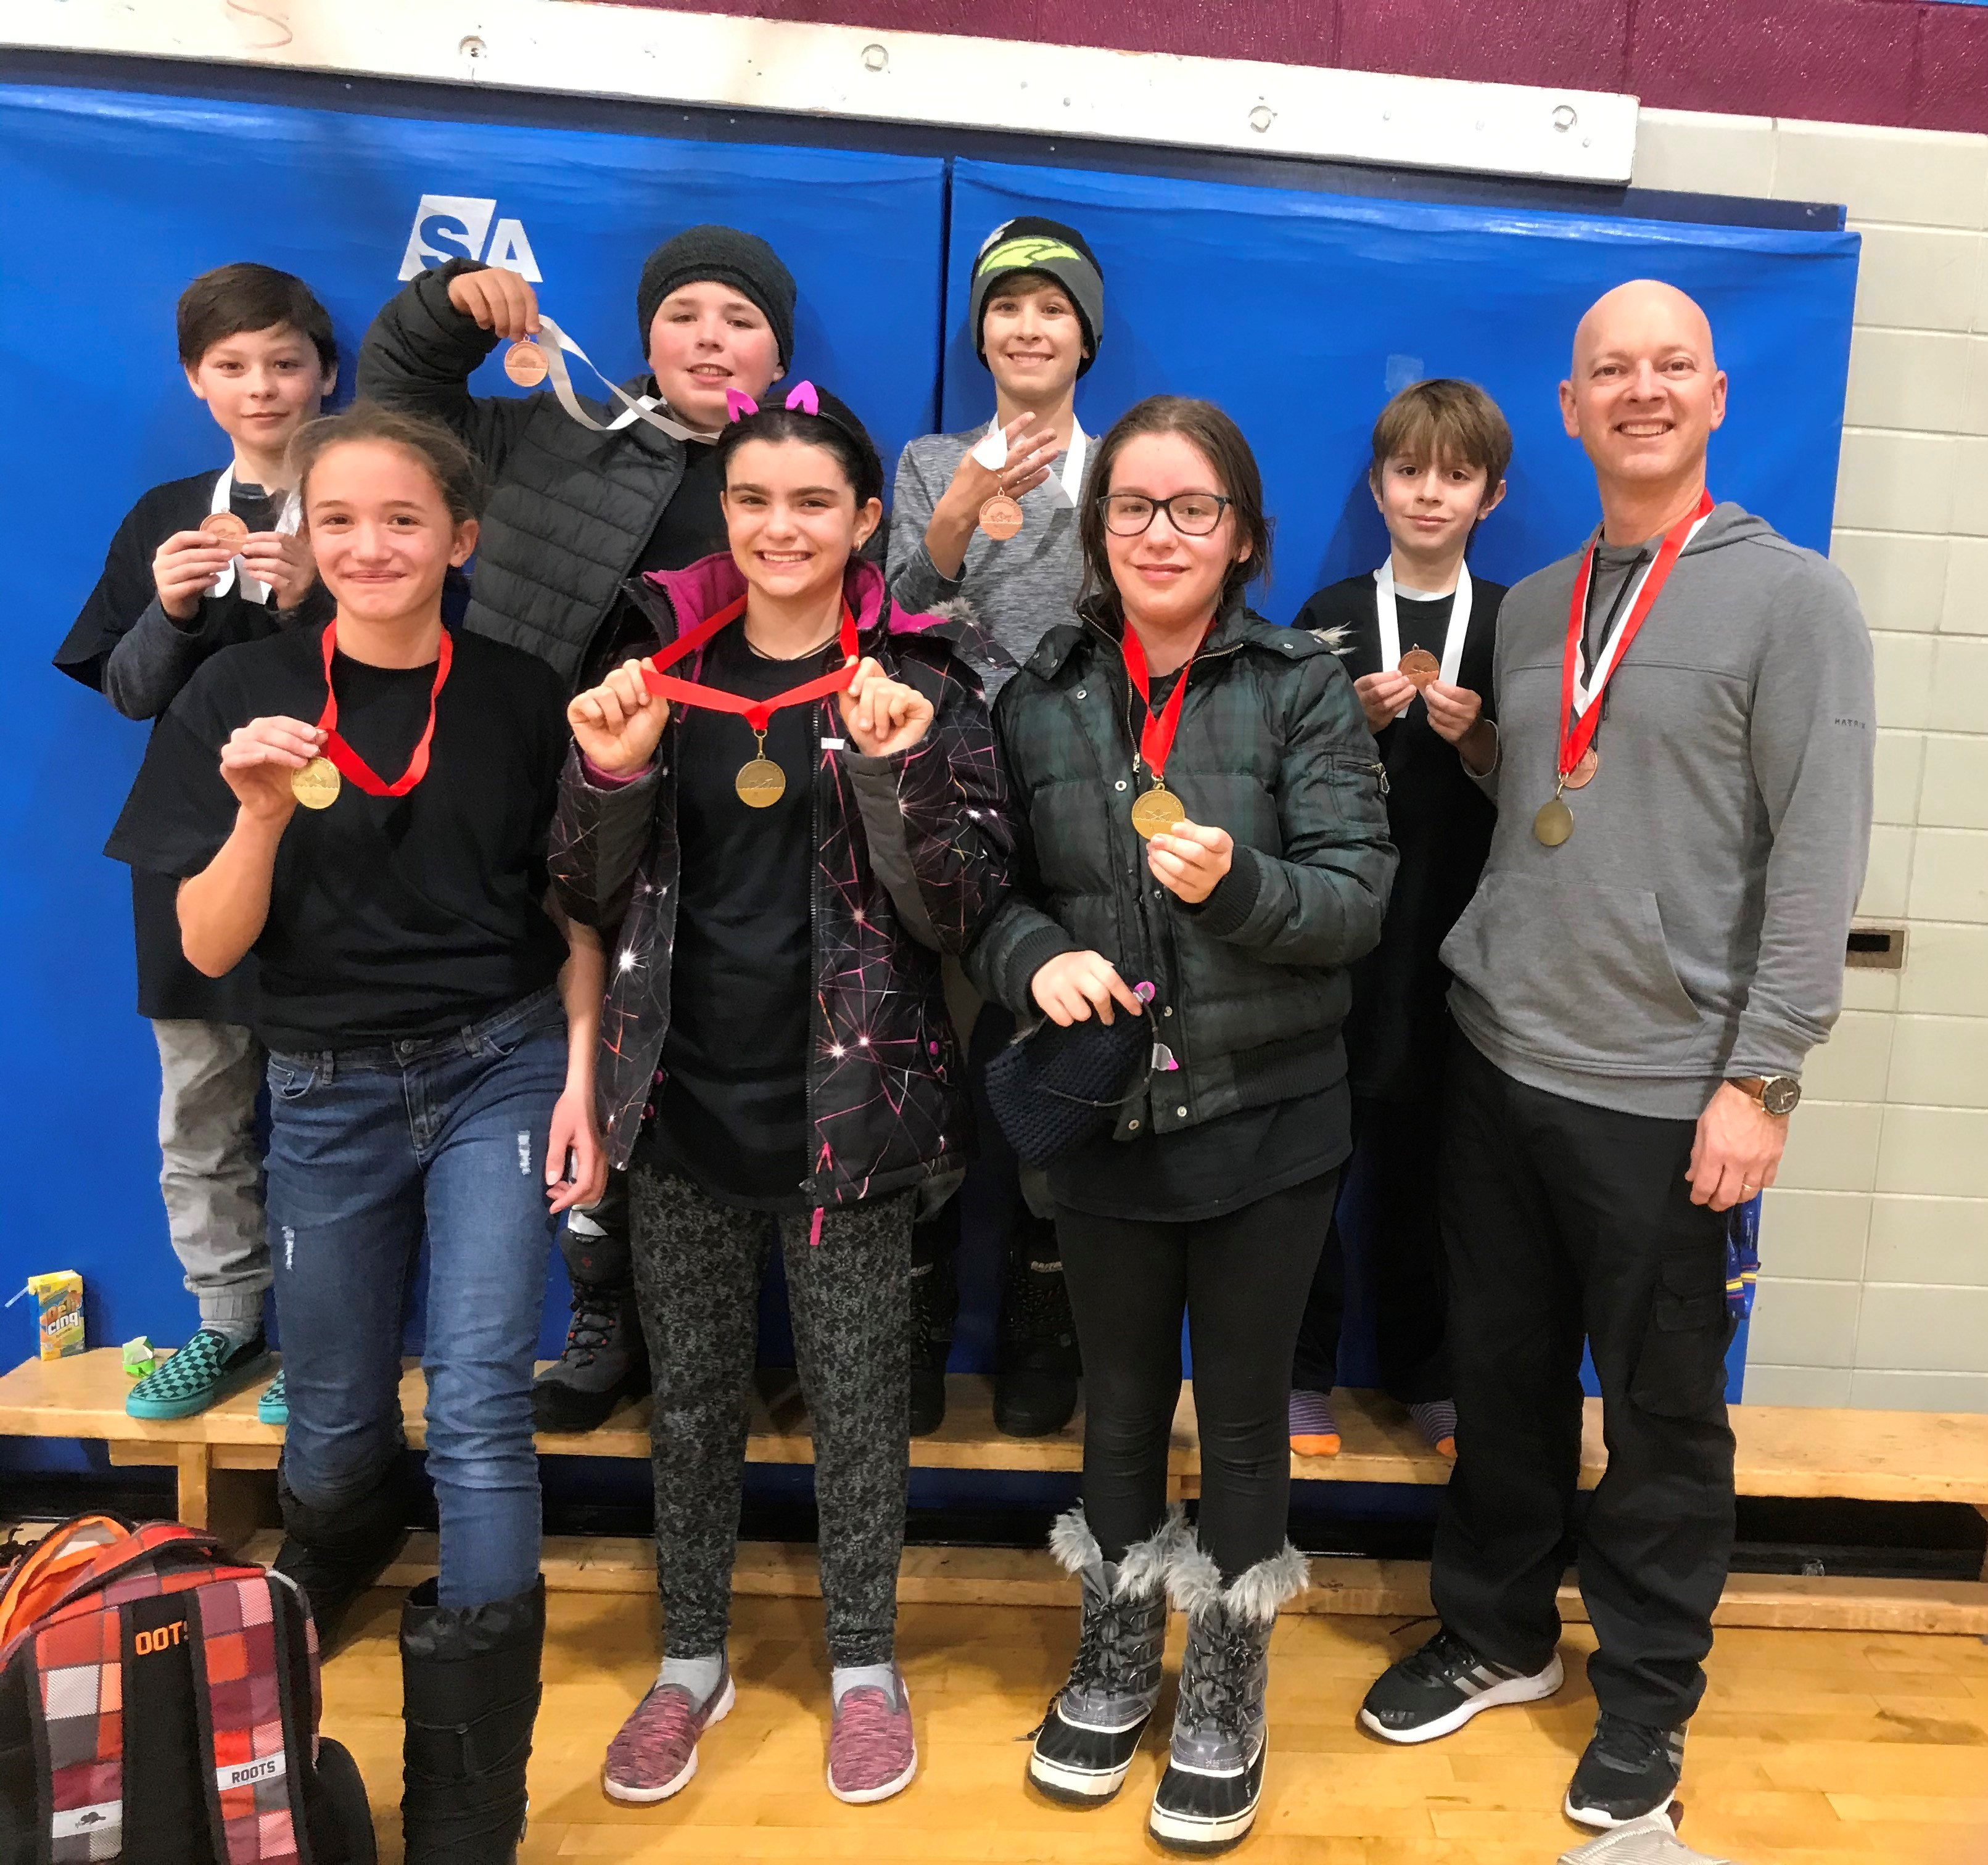 SPORTS – Elliot Lake school going to provincial cardboard boat finals - My Eespanola Now